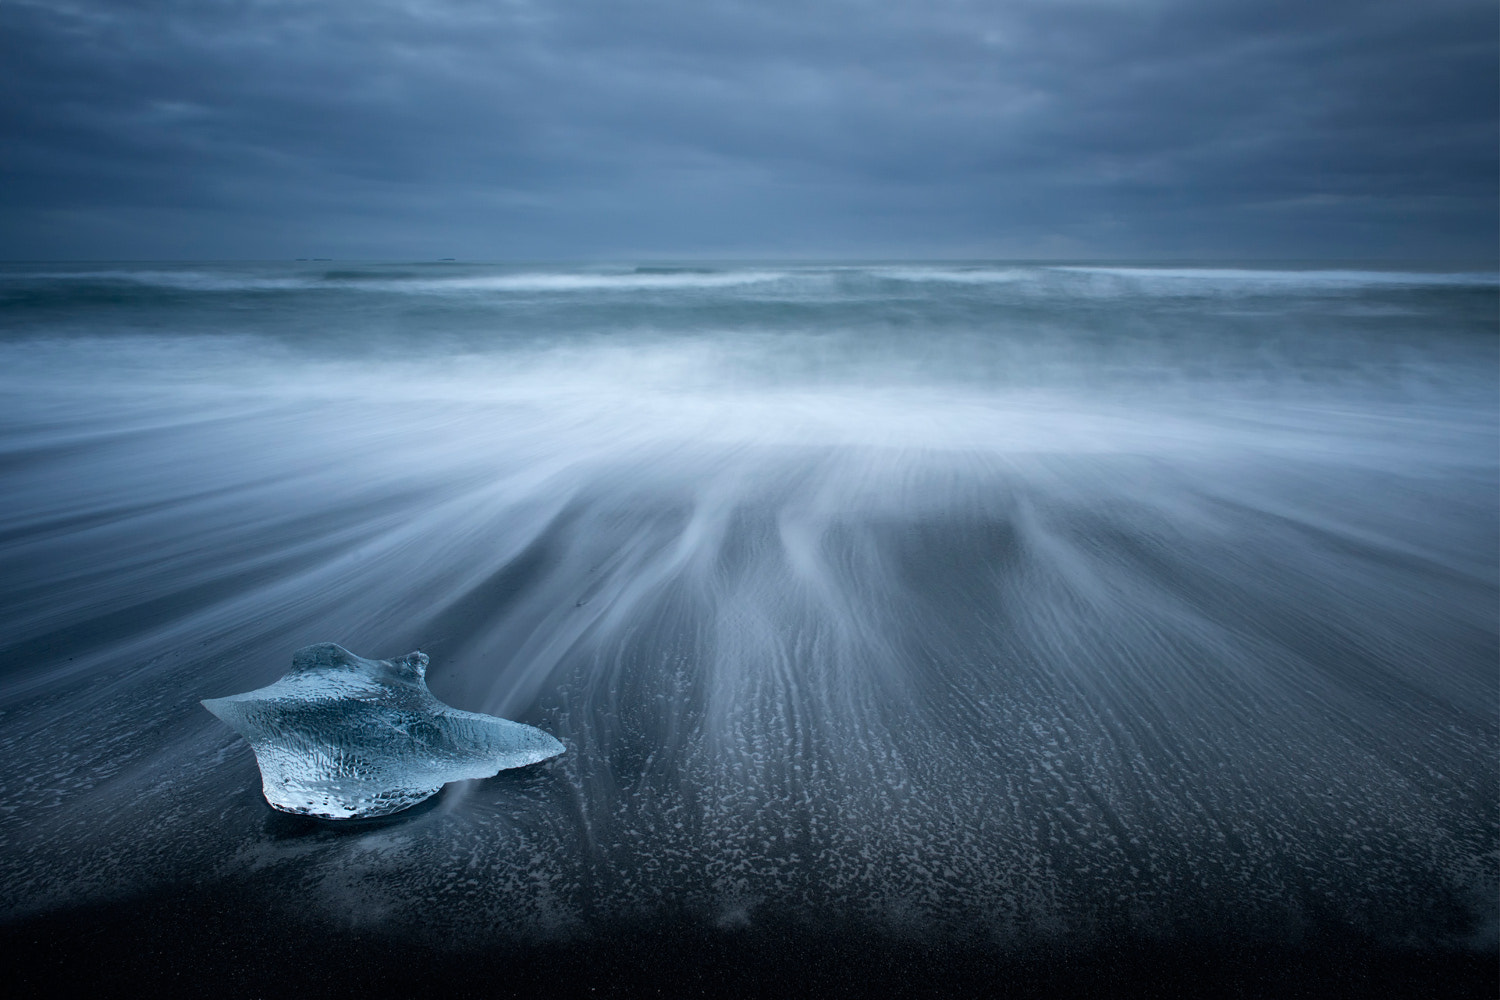 Photograph ...stranded by Dominik Orth on 500px